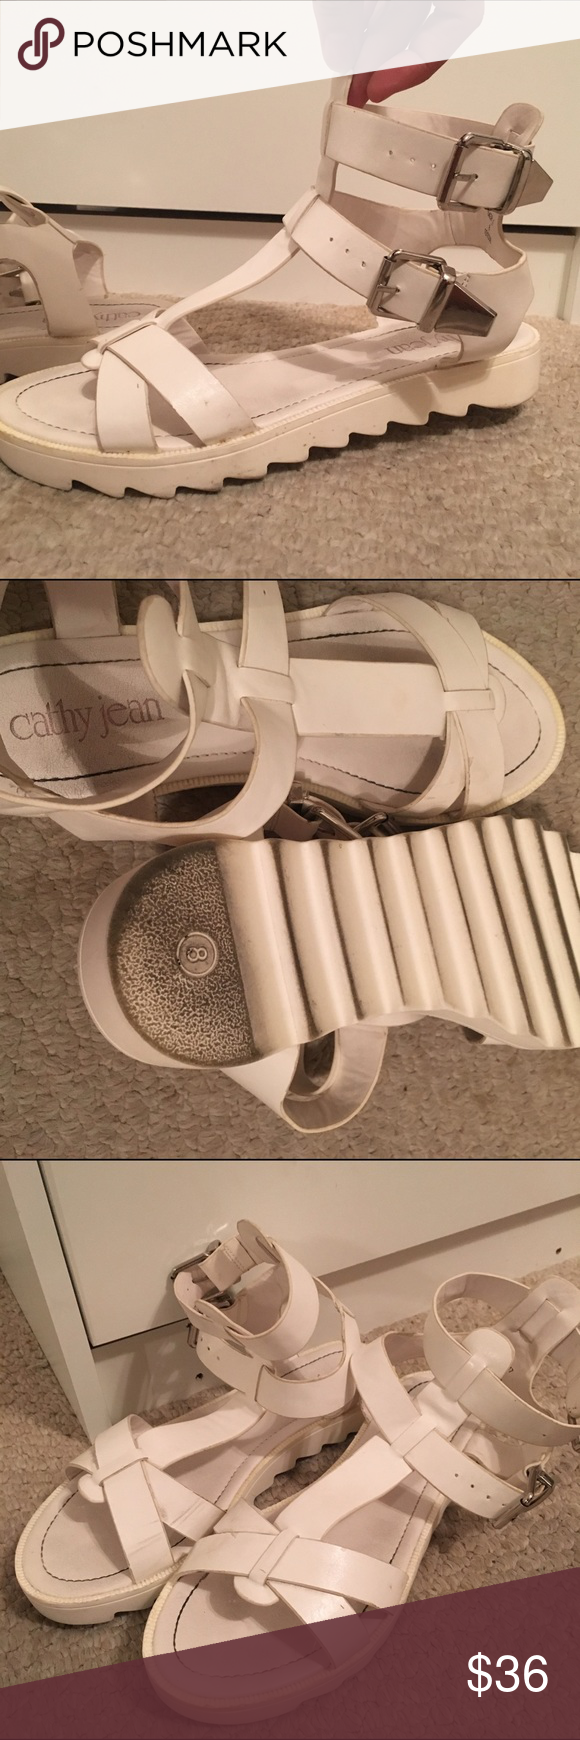 Cathy Jean Sandals White platform sandals from Cathy Jean. I will try to clean them as best as possible before being sent :) Women's size 8. The platform is barely an inch. Let me know if you have any questions! Cathy Jean Shoes Sandals